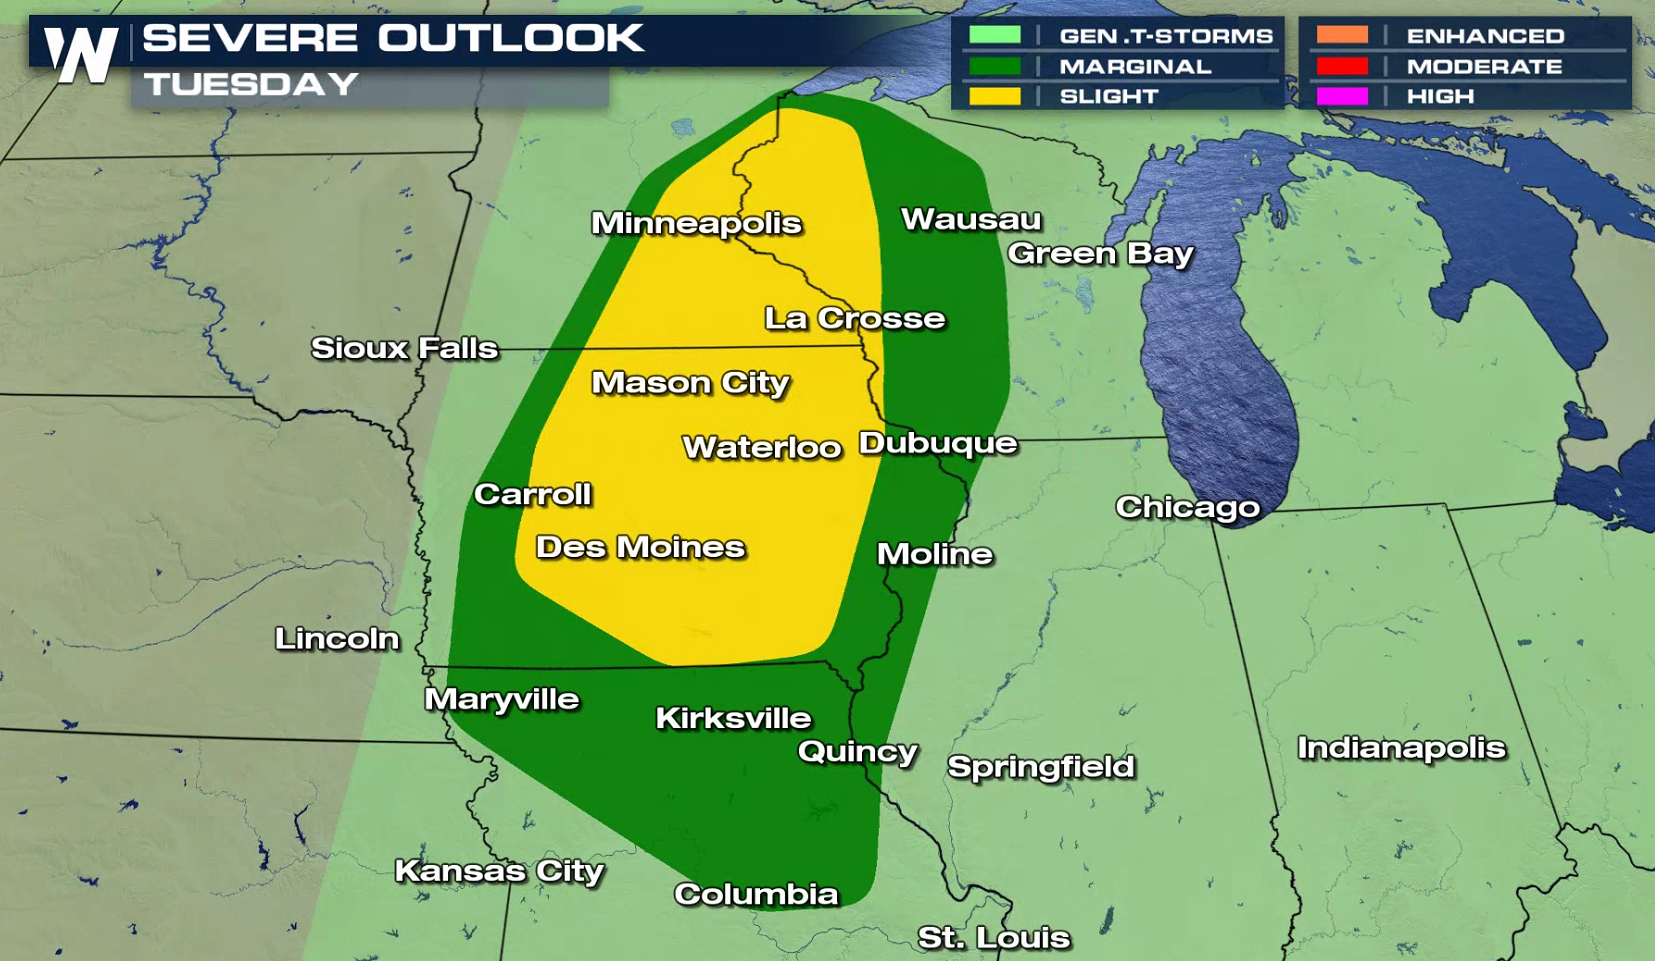 Risk for Severe Thunderstorms in the Upper Midwest